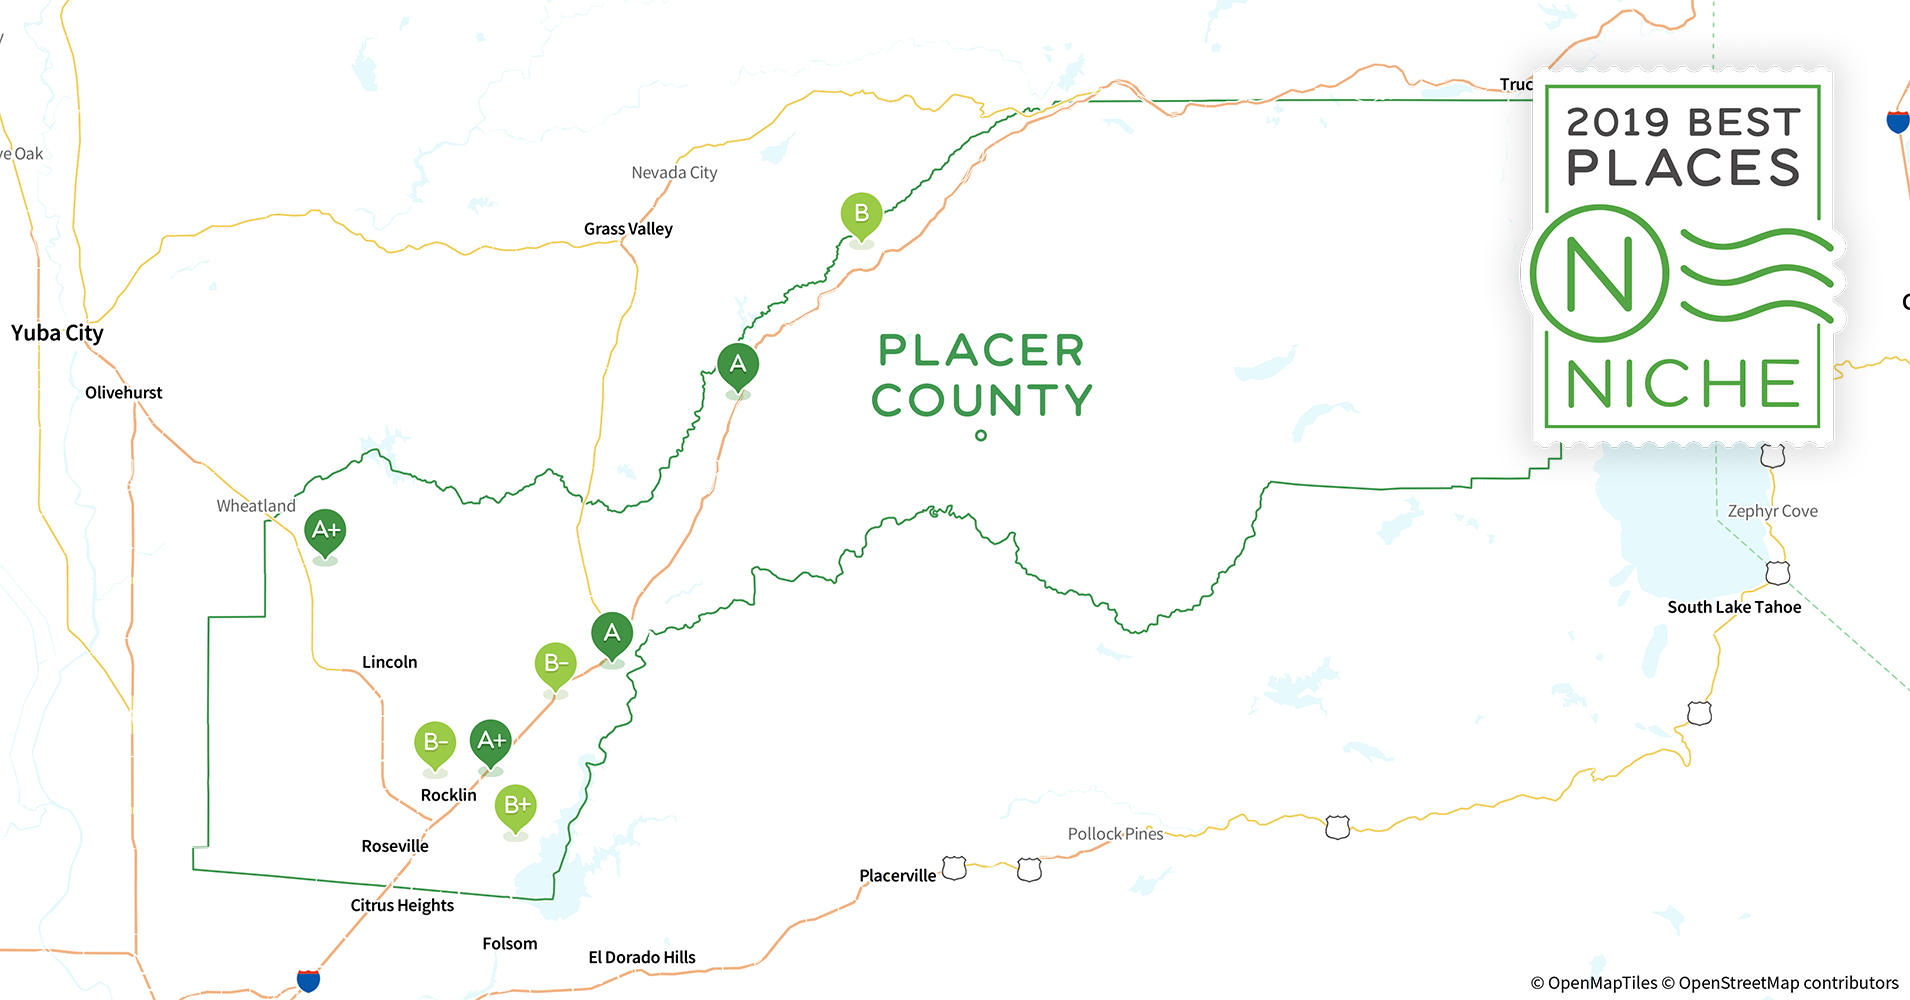 2019 Safe Places to Live in Placer County, CA - Niche